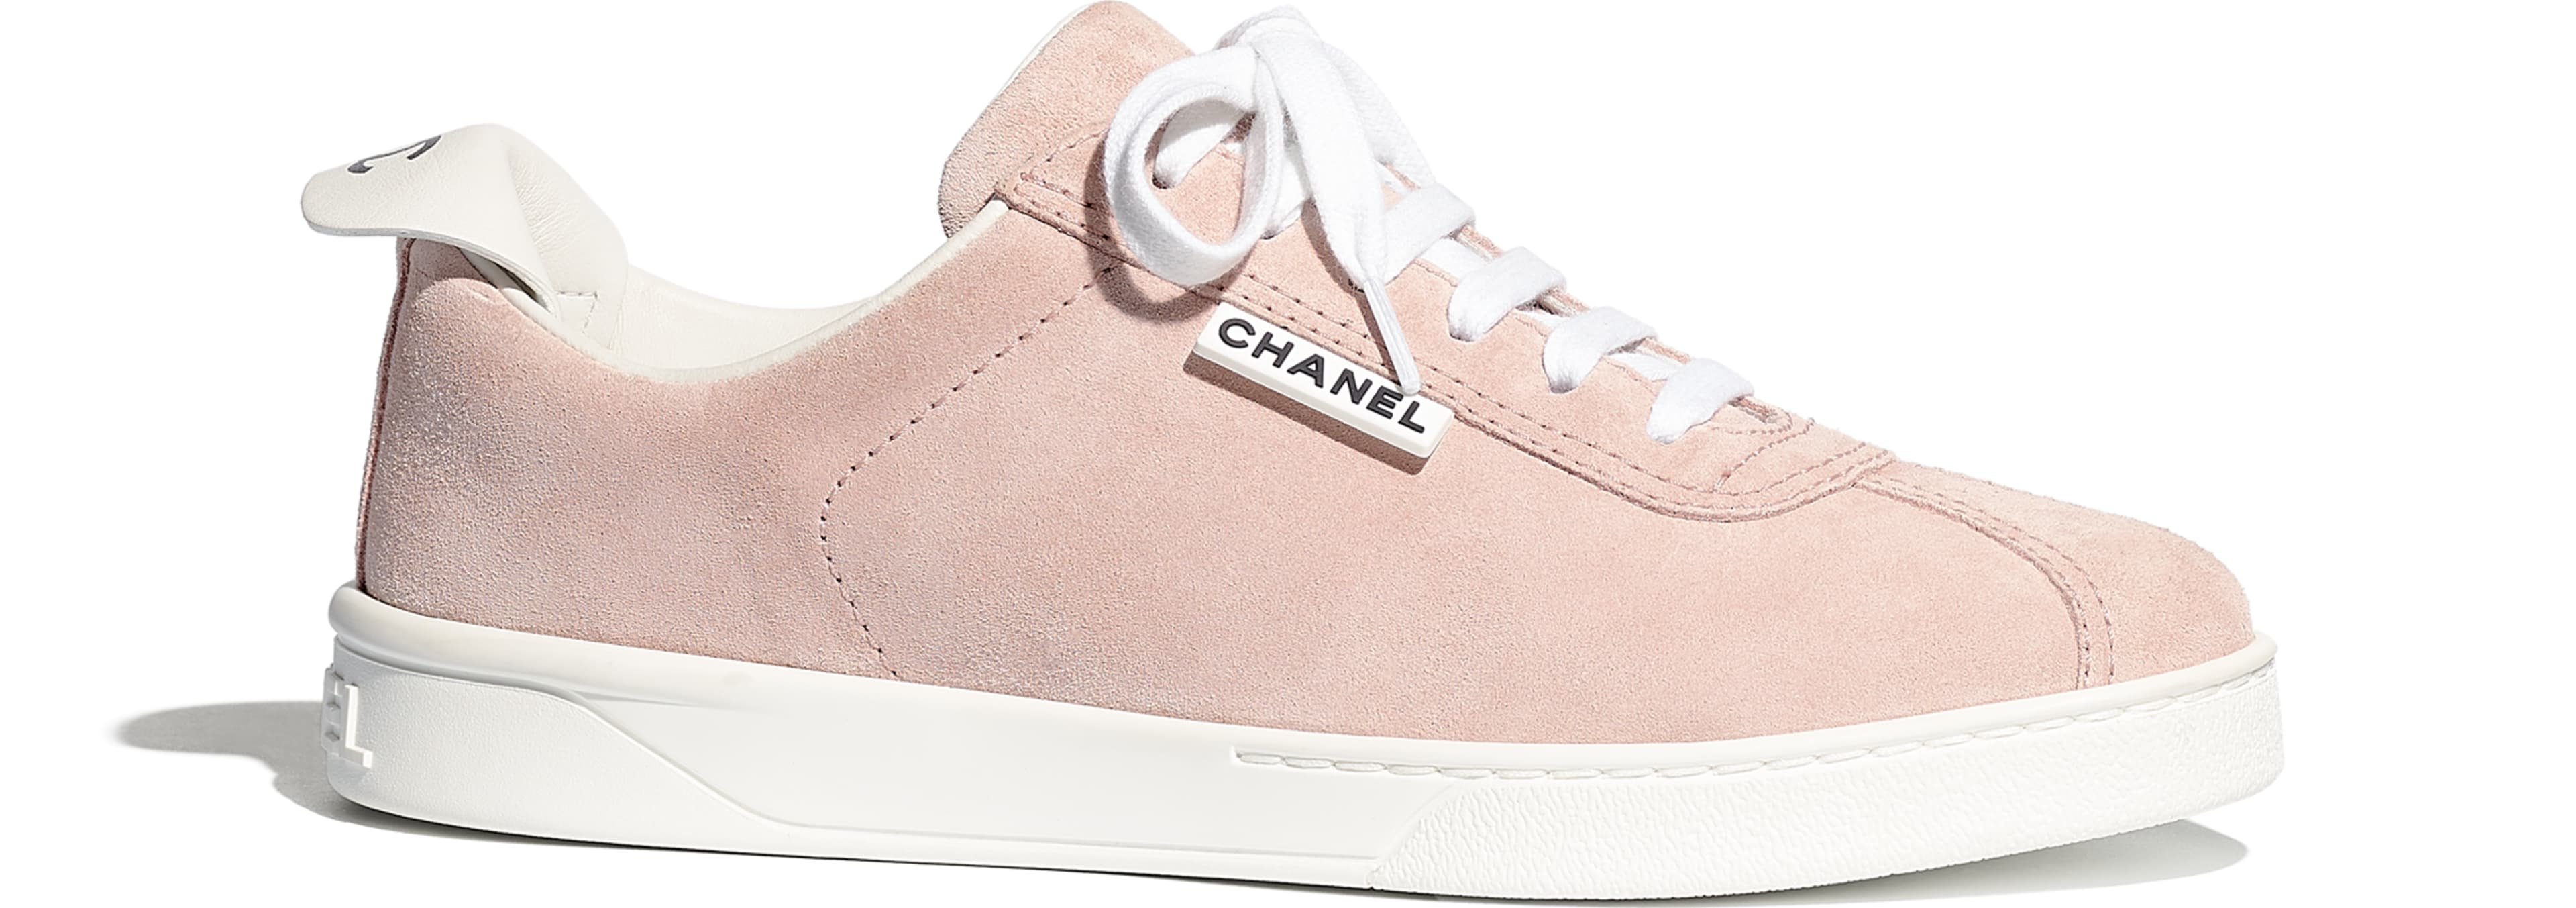 chanel pink tennis shoes